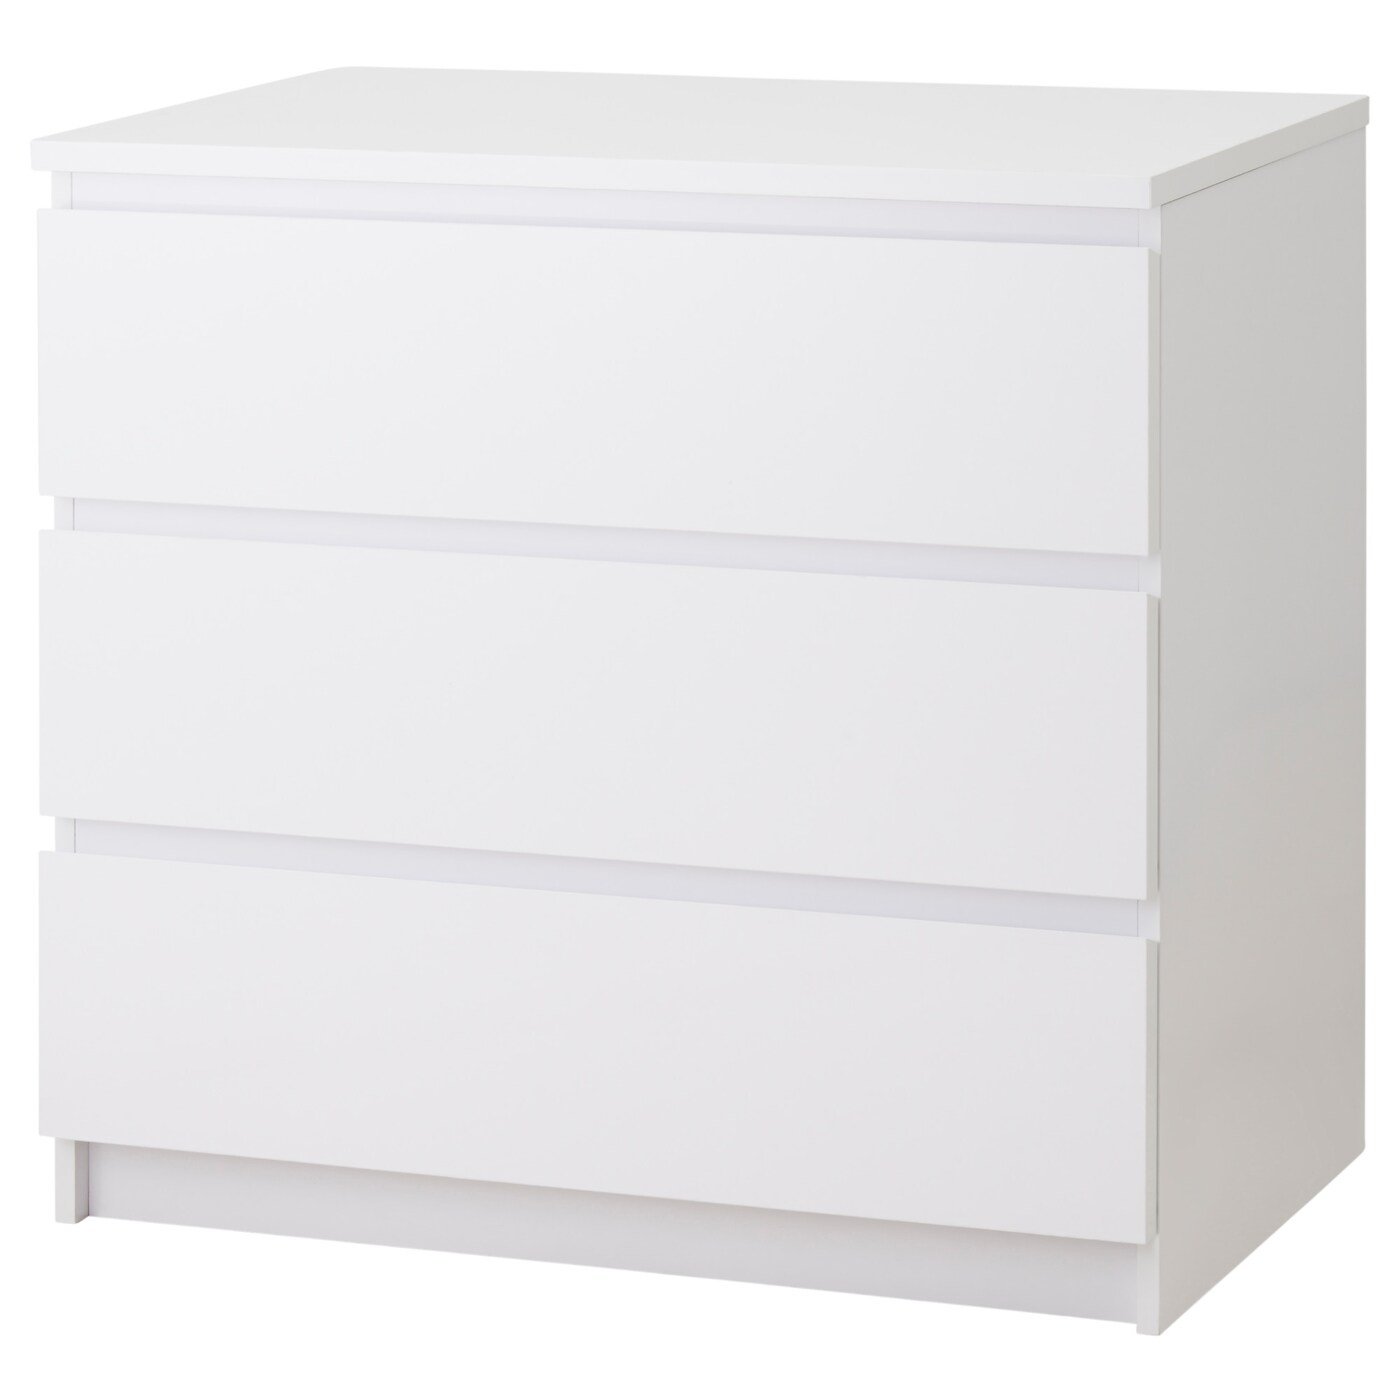 malm chest of 3 drawers white high gloss 80x78 cm ikea. Black Bedroom Furniture Sets. Home Design Ideas